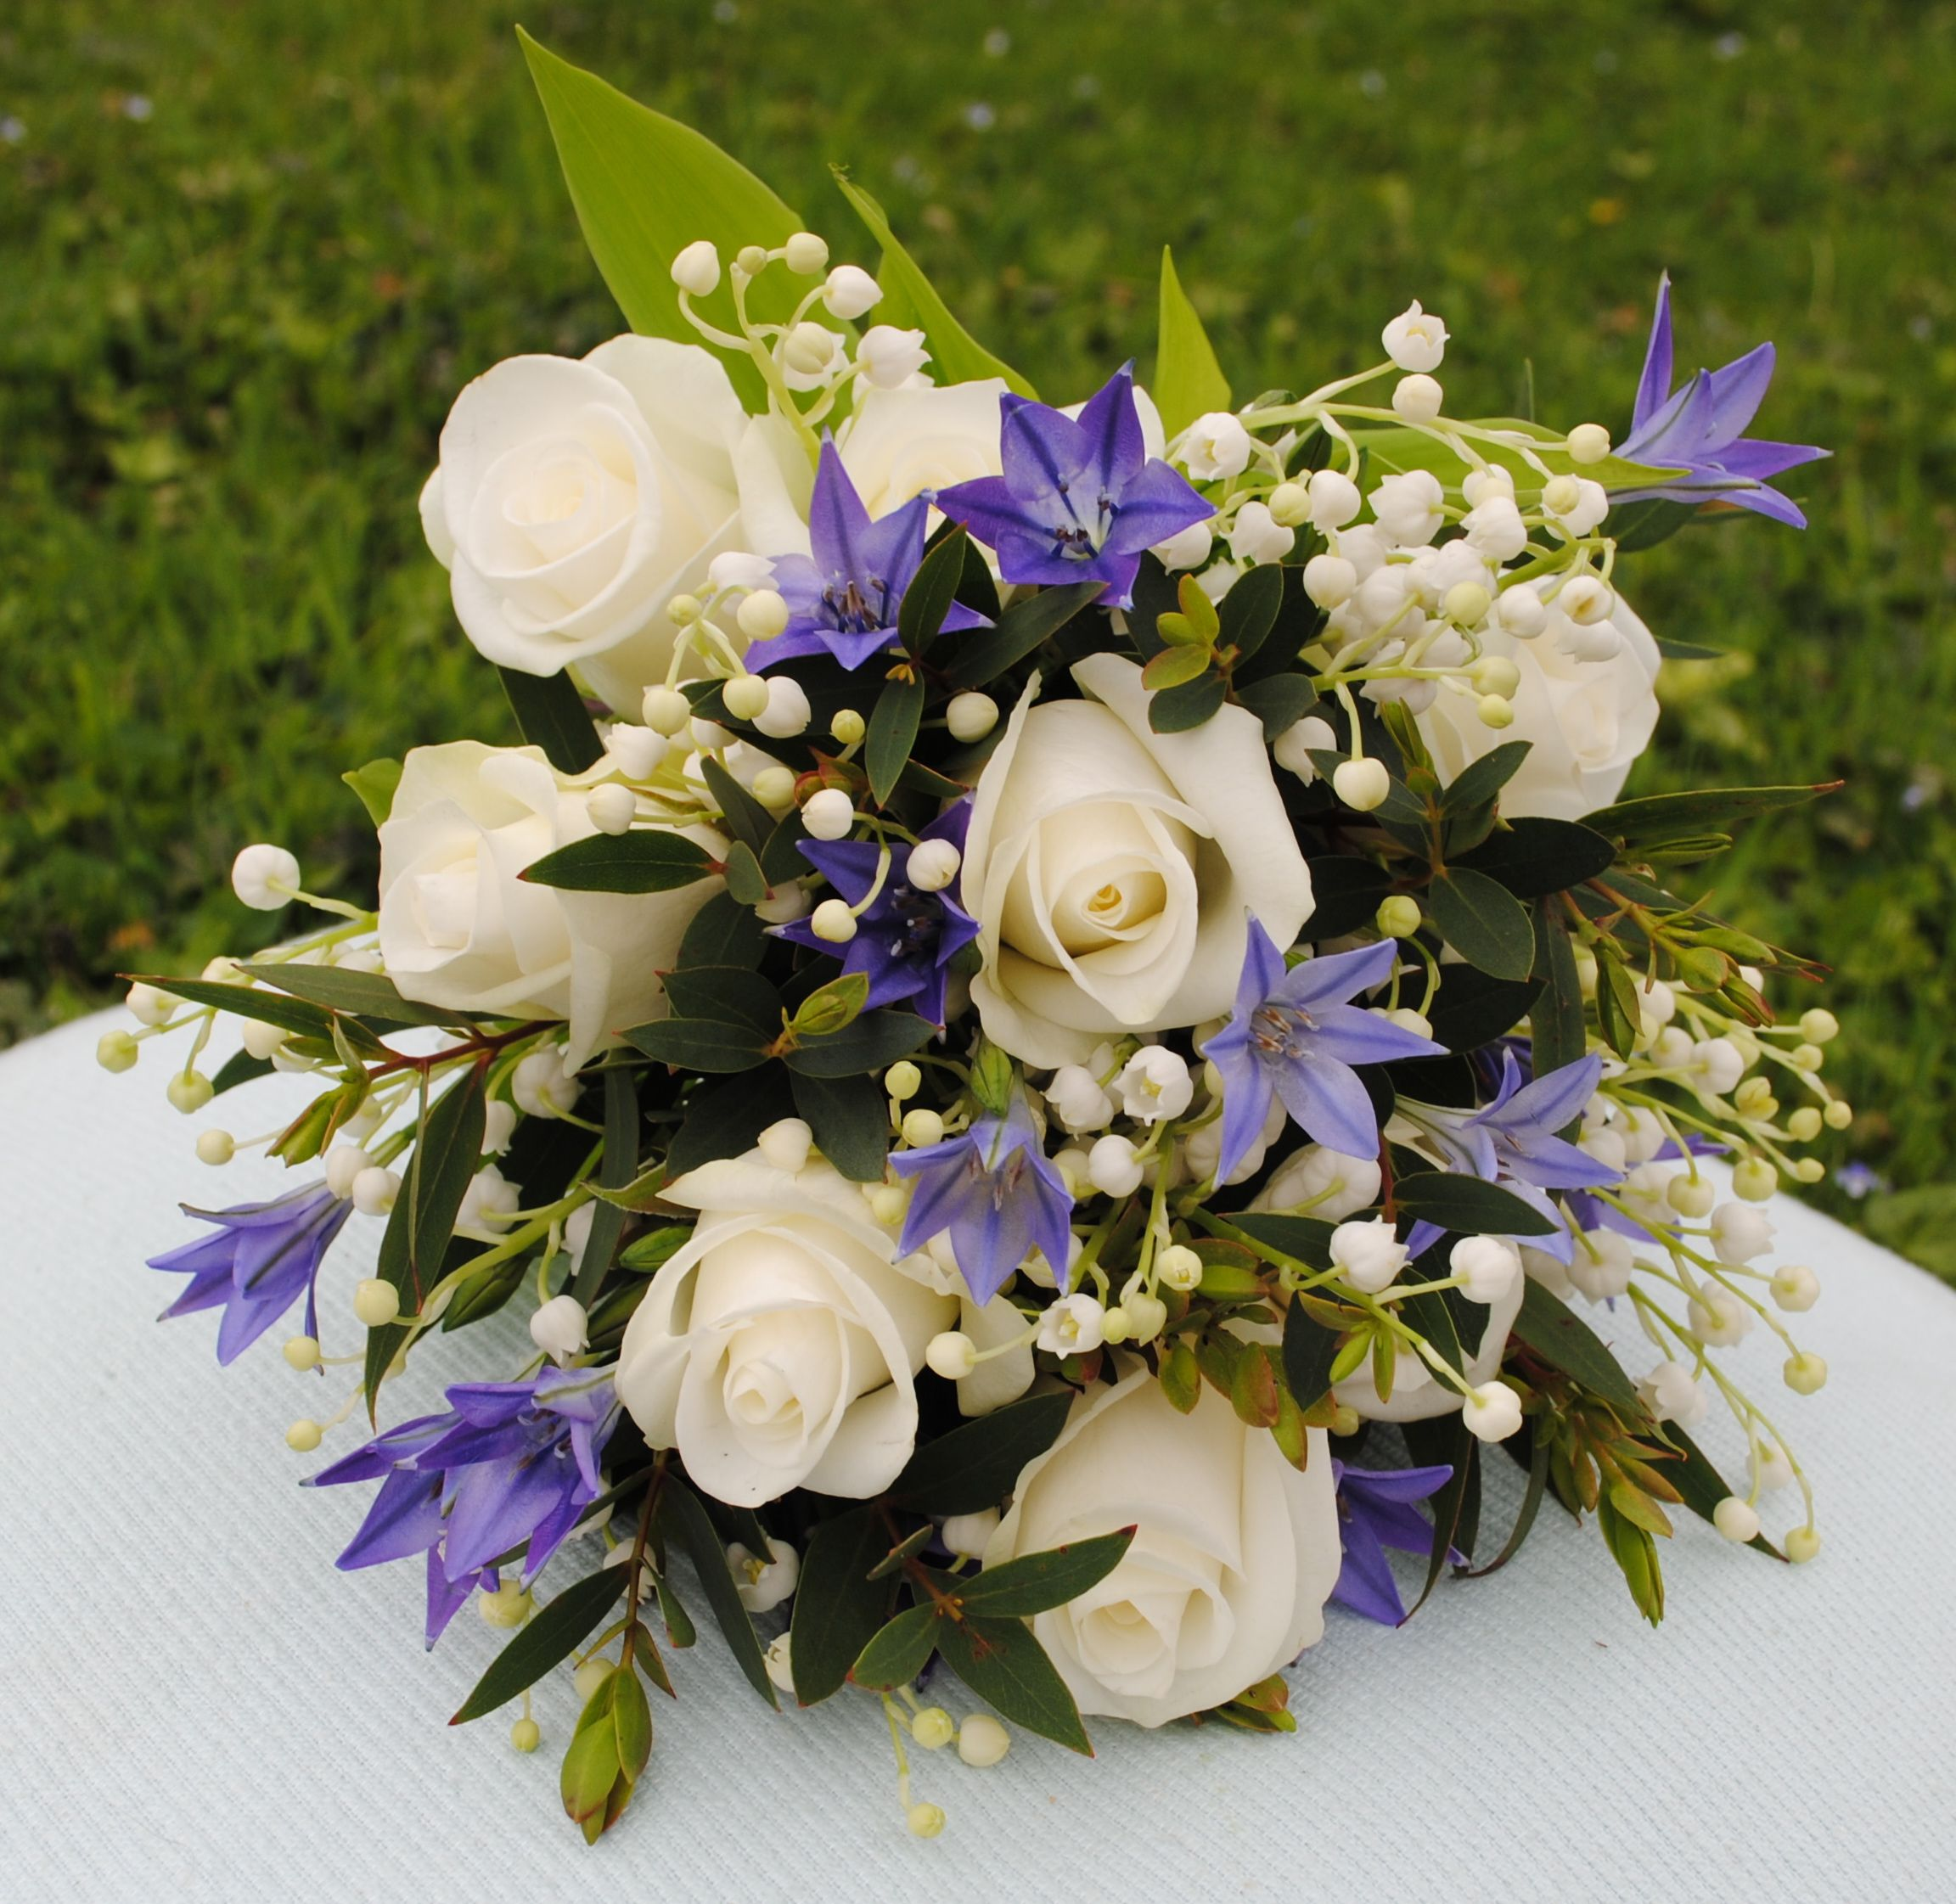 Lily Of The Valley Wedding Flowers: Roses, Lily Of The Valley And Brodea